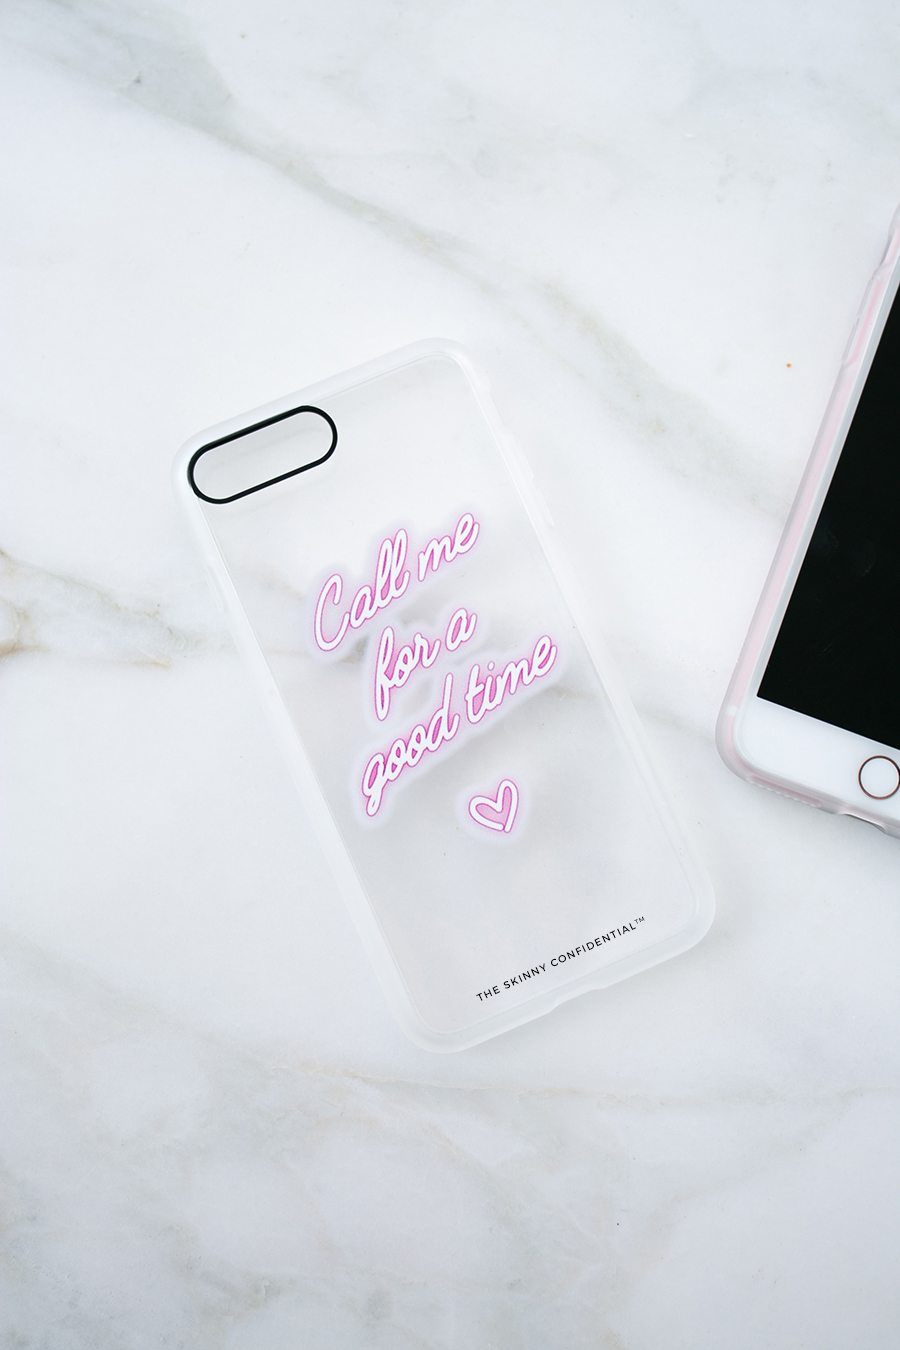 the-skinny-confidential-x-casetify-16-by-the-skinny-confidential